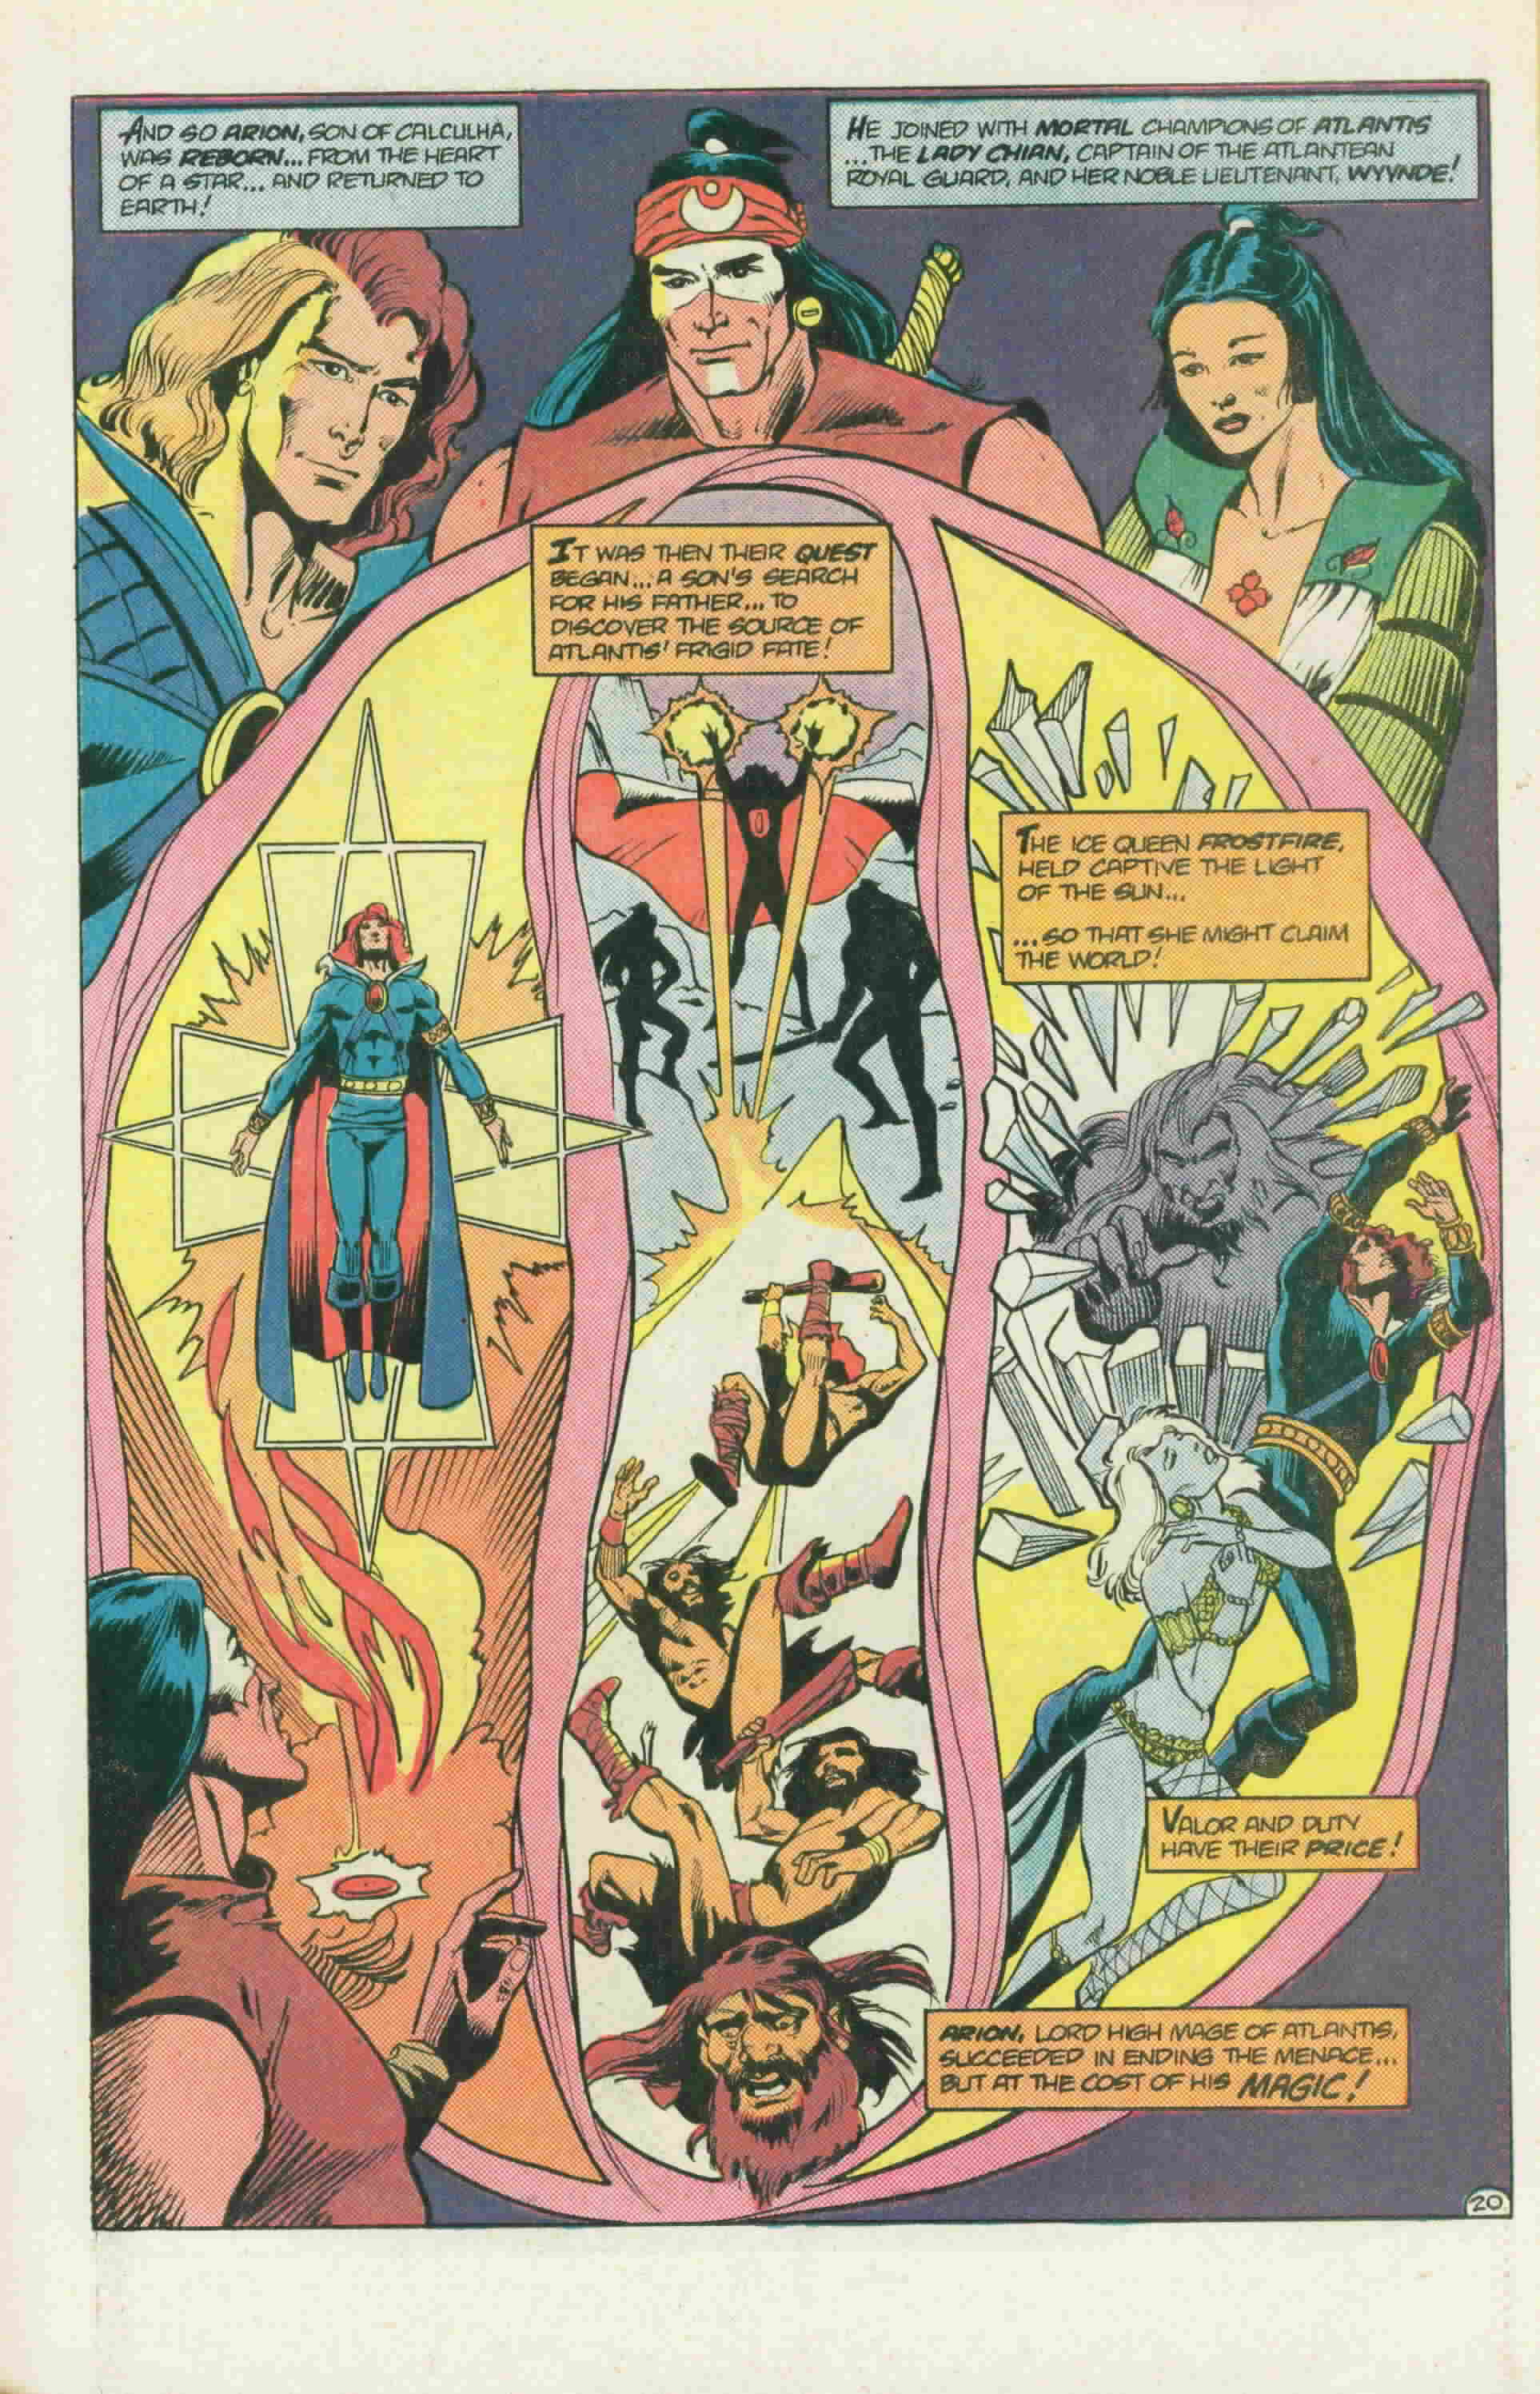 Read online Arion, Lord of Atlantis comic -  Issue #22 - 29